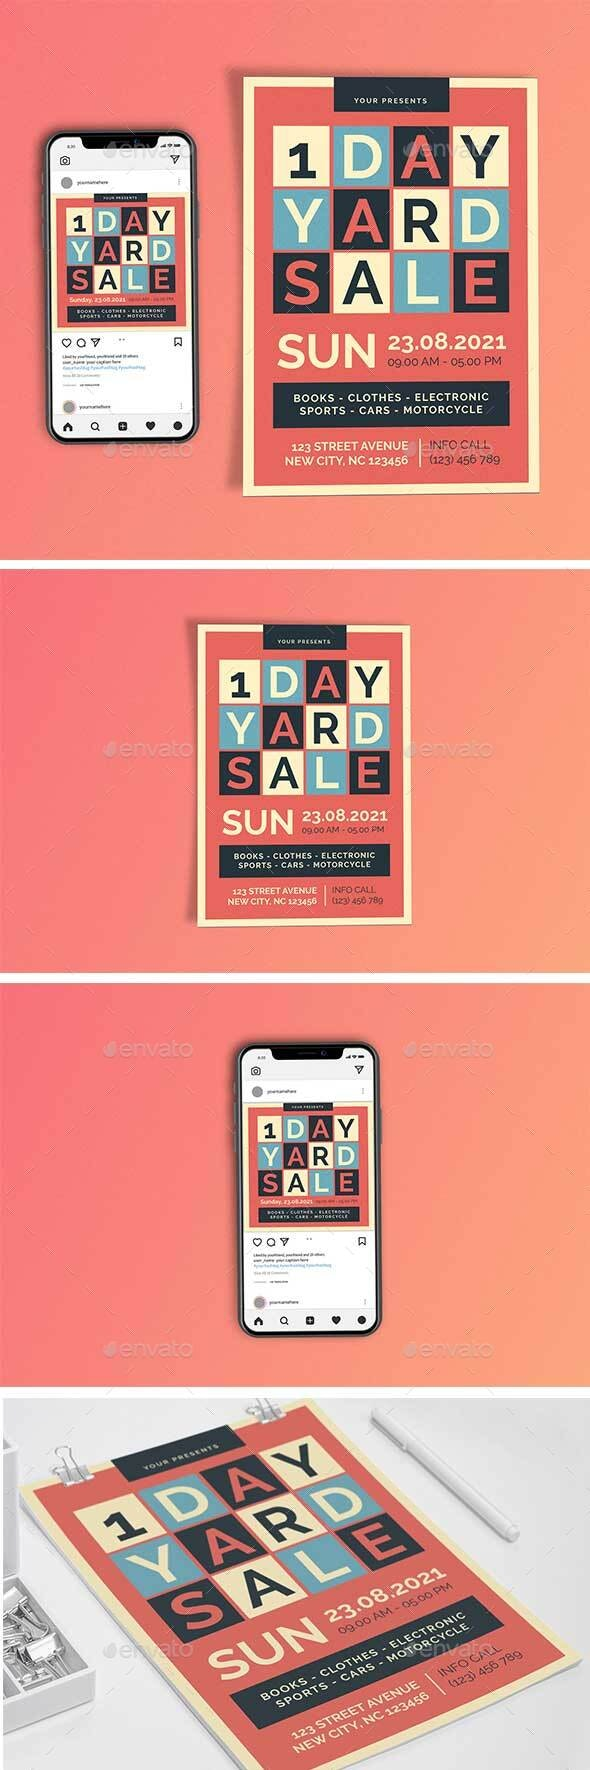 1 Day Yard Sale Template Set - Flyers Print Templates